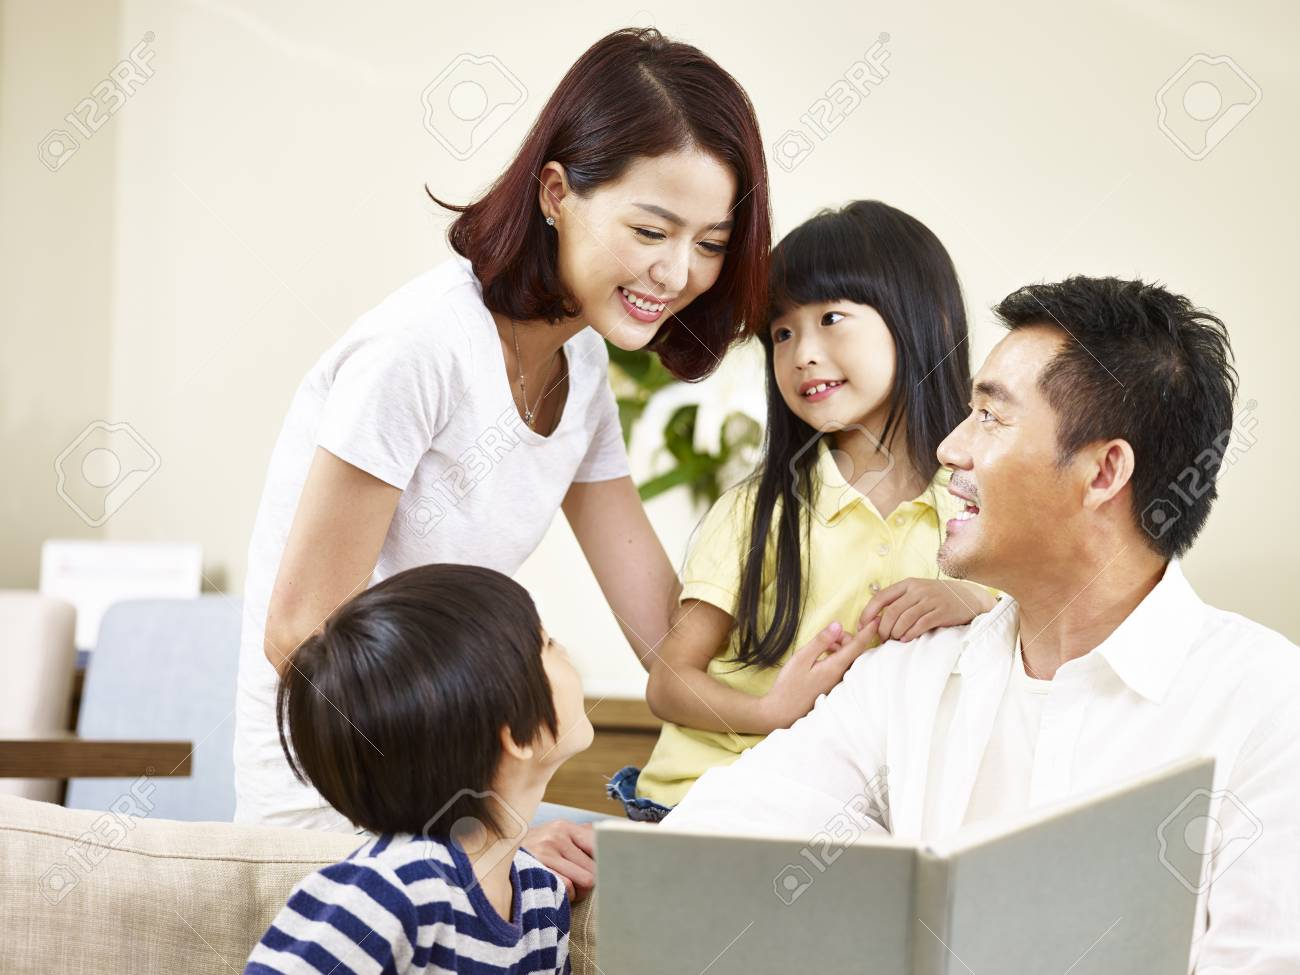 asian parents mother and father and two children son and daughter reading a book telling a story together. - 91878561